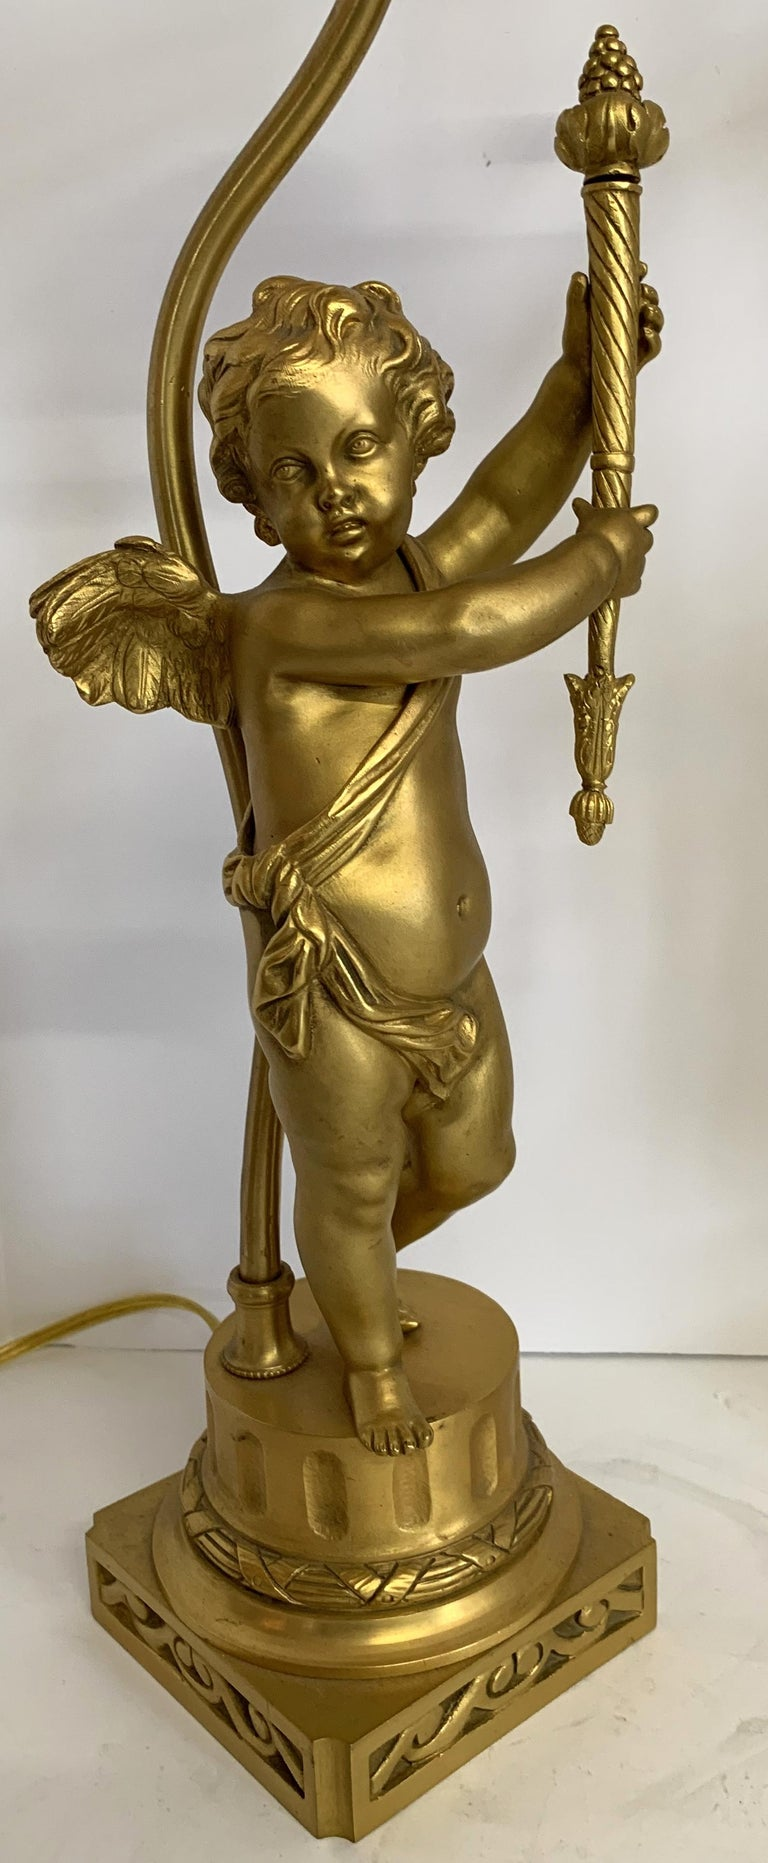 A wonderful pair of French dore bronze winged cherub / putti figural sculptures holding torches converted into lamps.